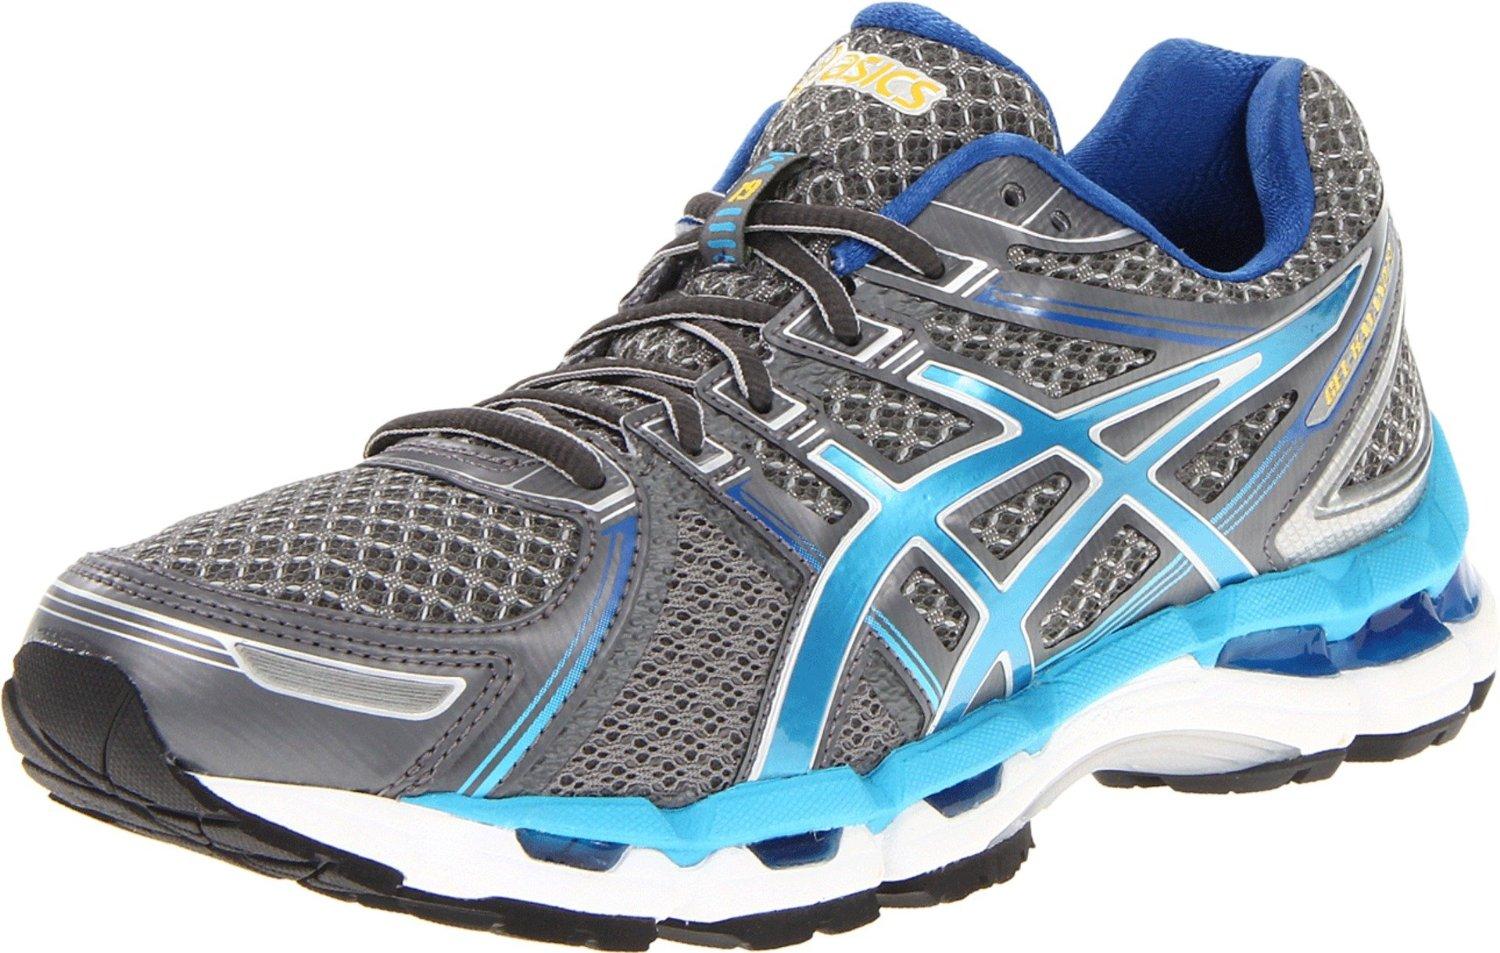 Buy Asics Gel Kayano 19 Womens White Up To Off59 Discounted